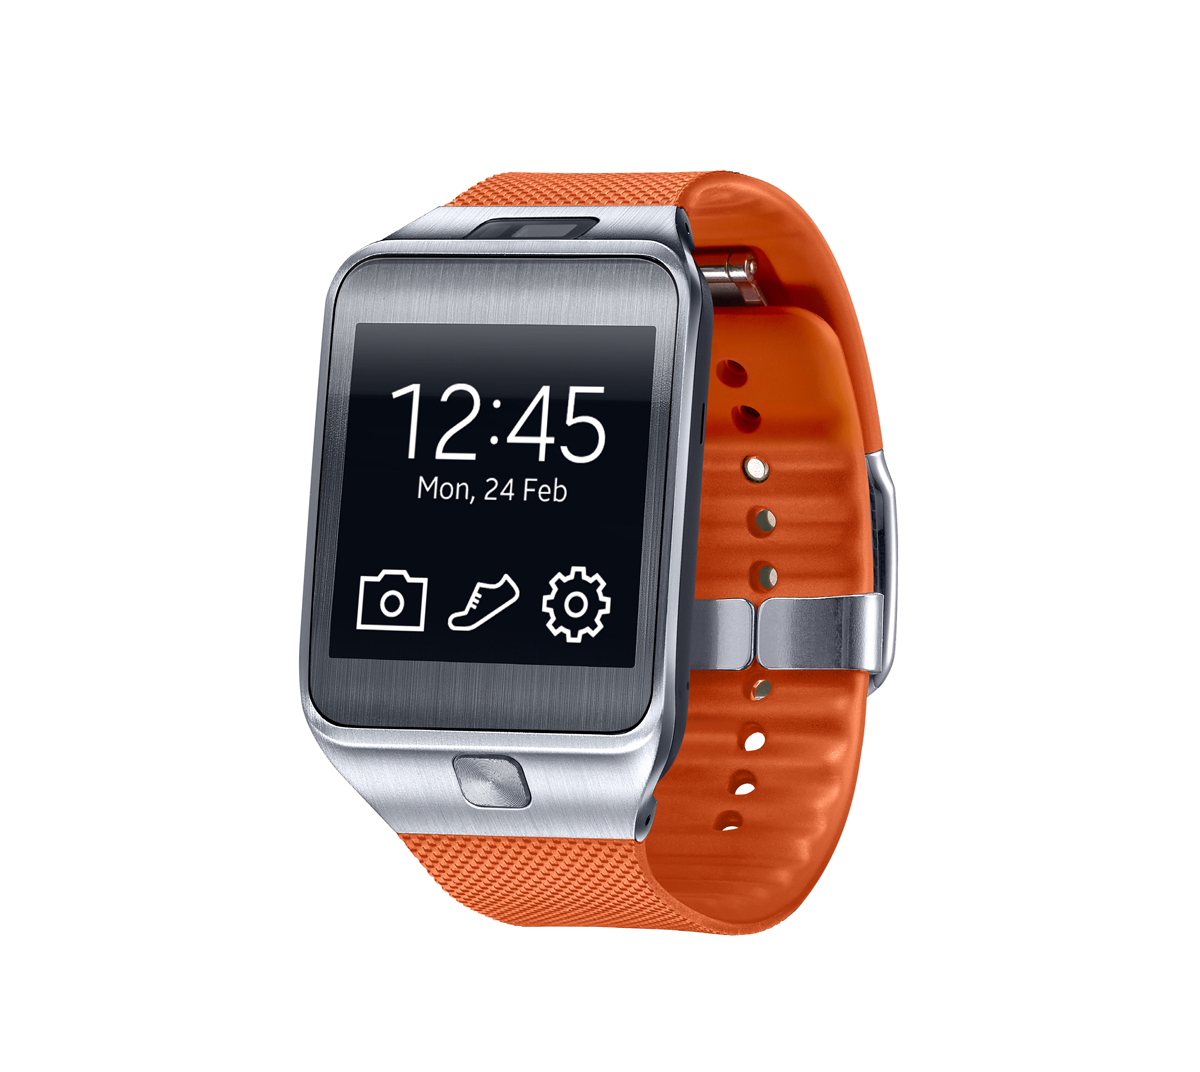 samsung gear 2 samsung d voile ses nouvelles montres. Black Bedroom Furniture Sets. Home Design Ideas